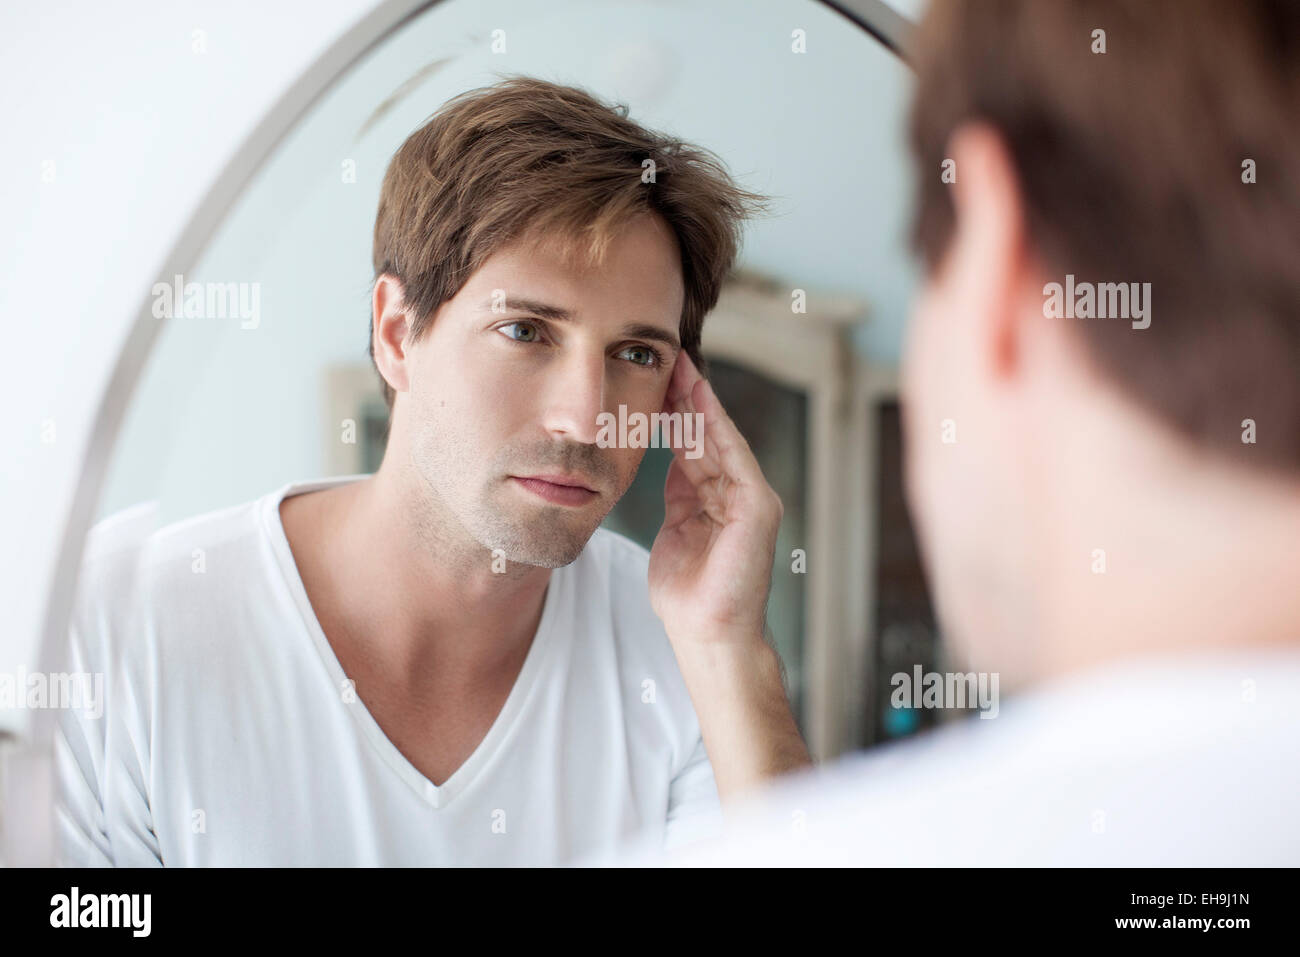 man looking at self in mirror with concerned look stock photo